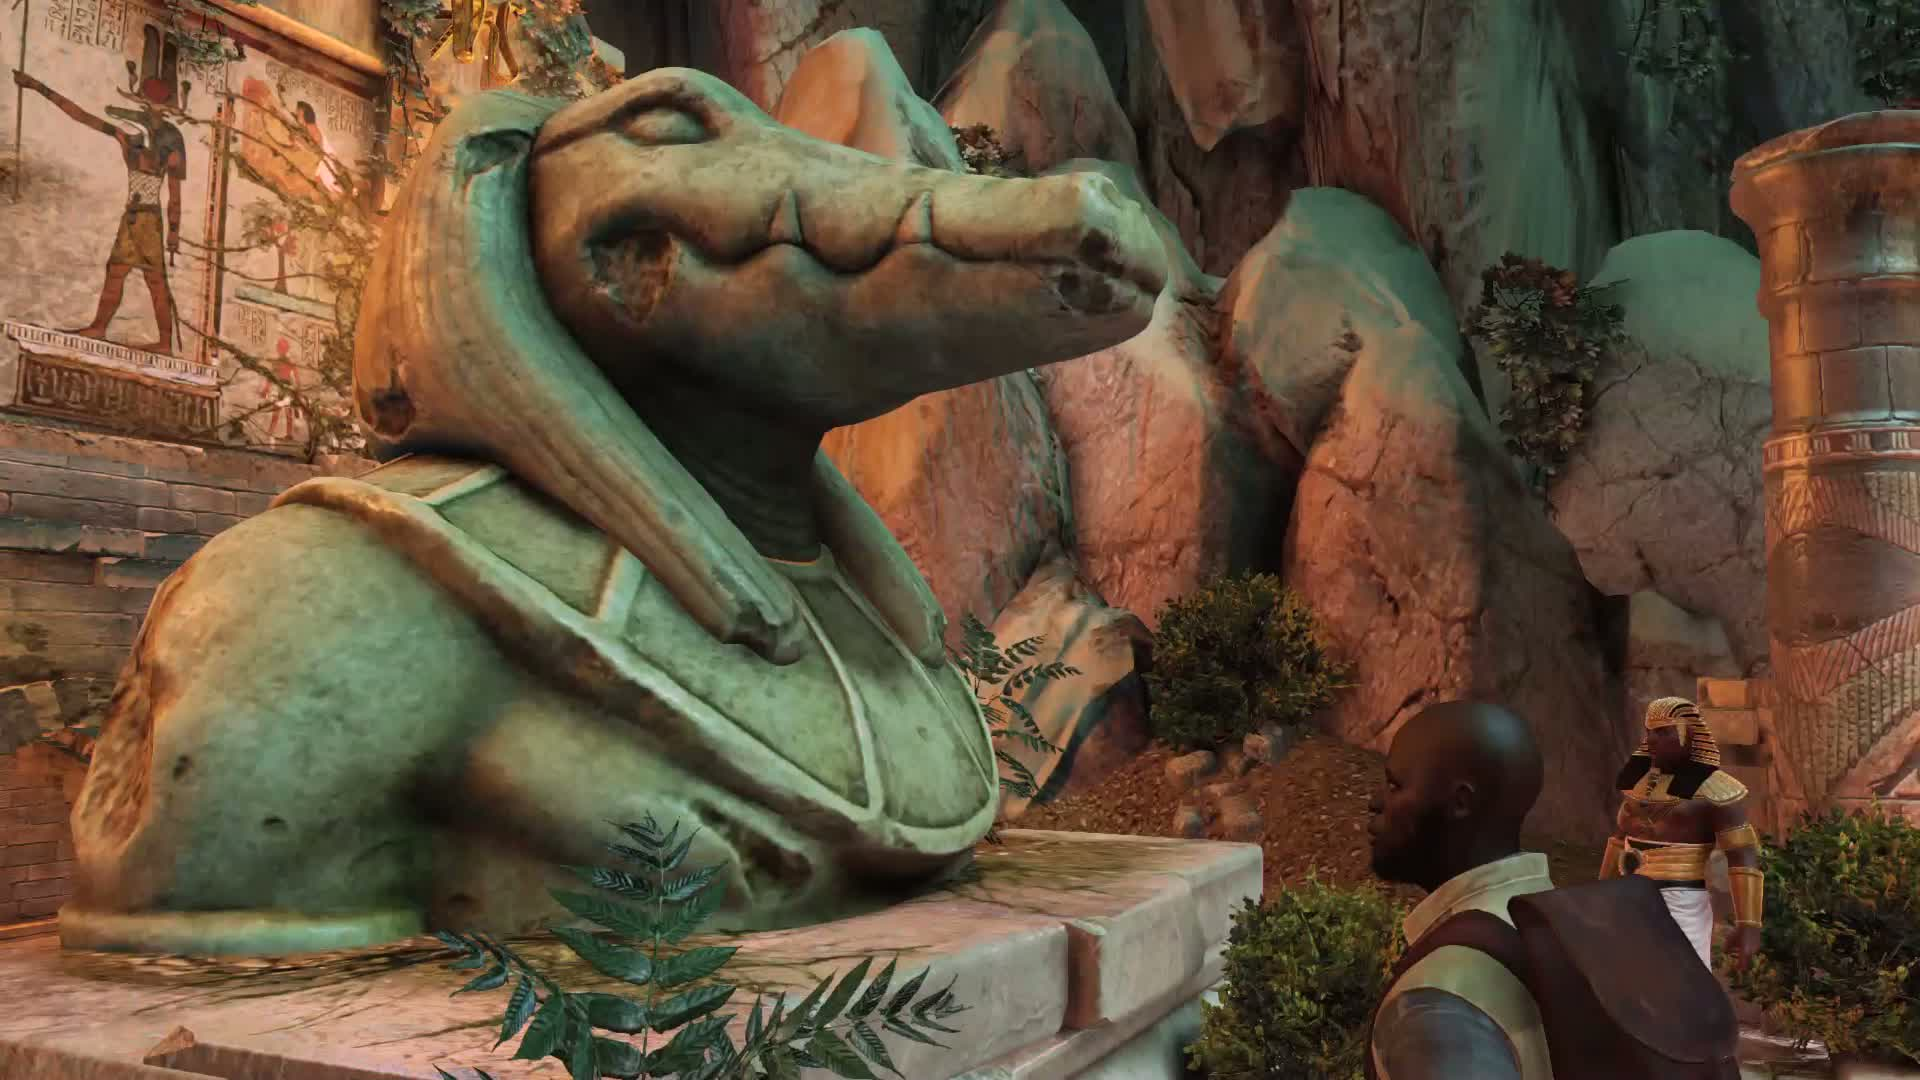 Lara Croft and the Temple of Osiris  Videos and Trailers